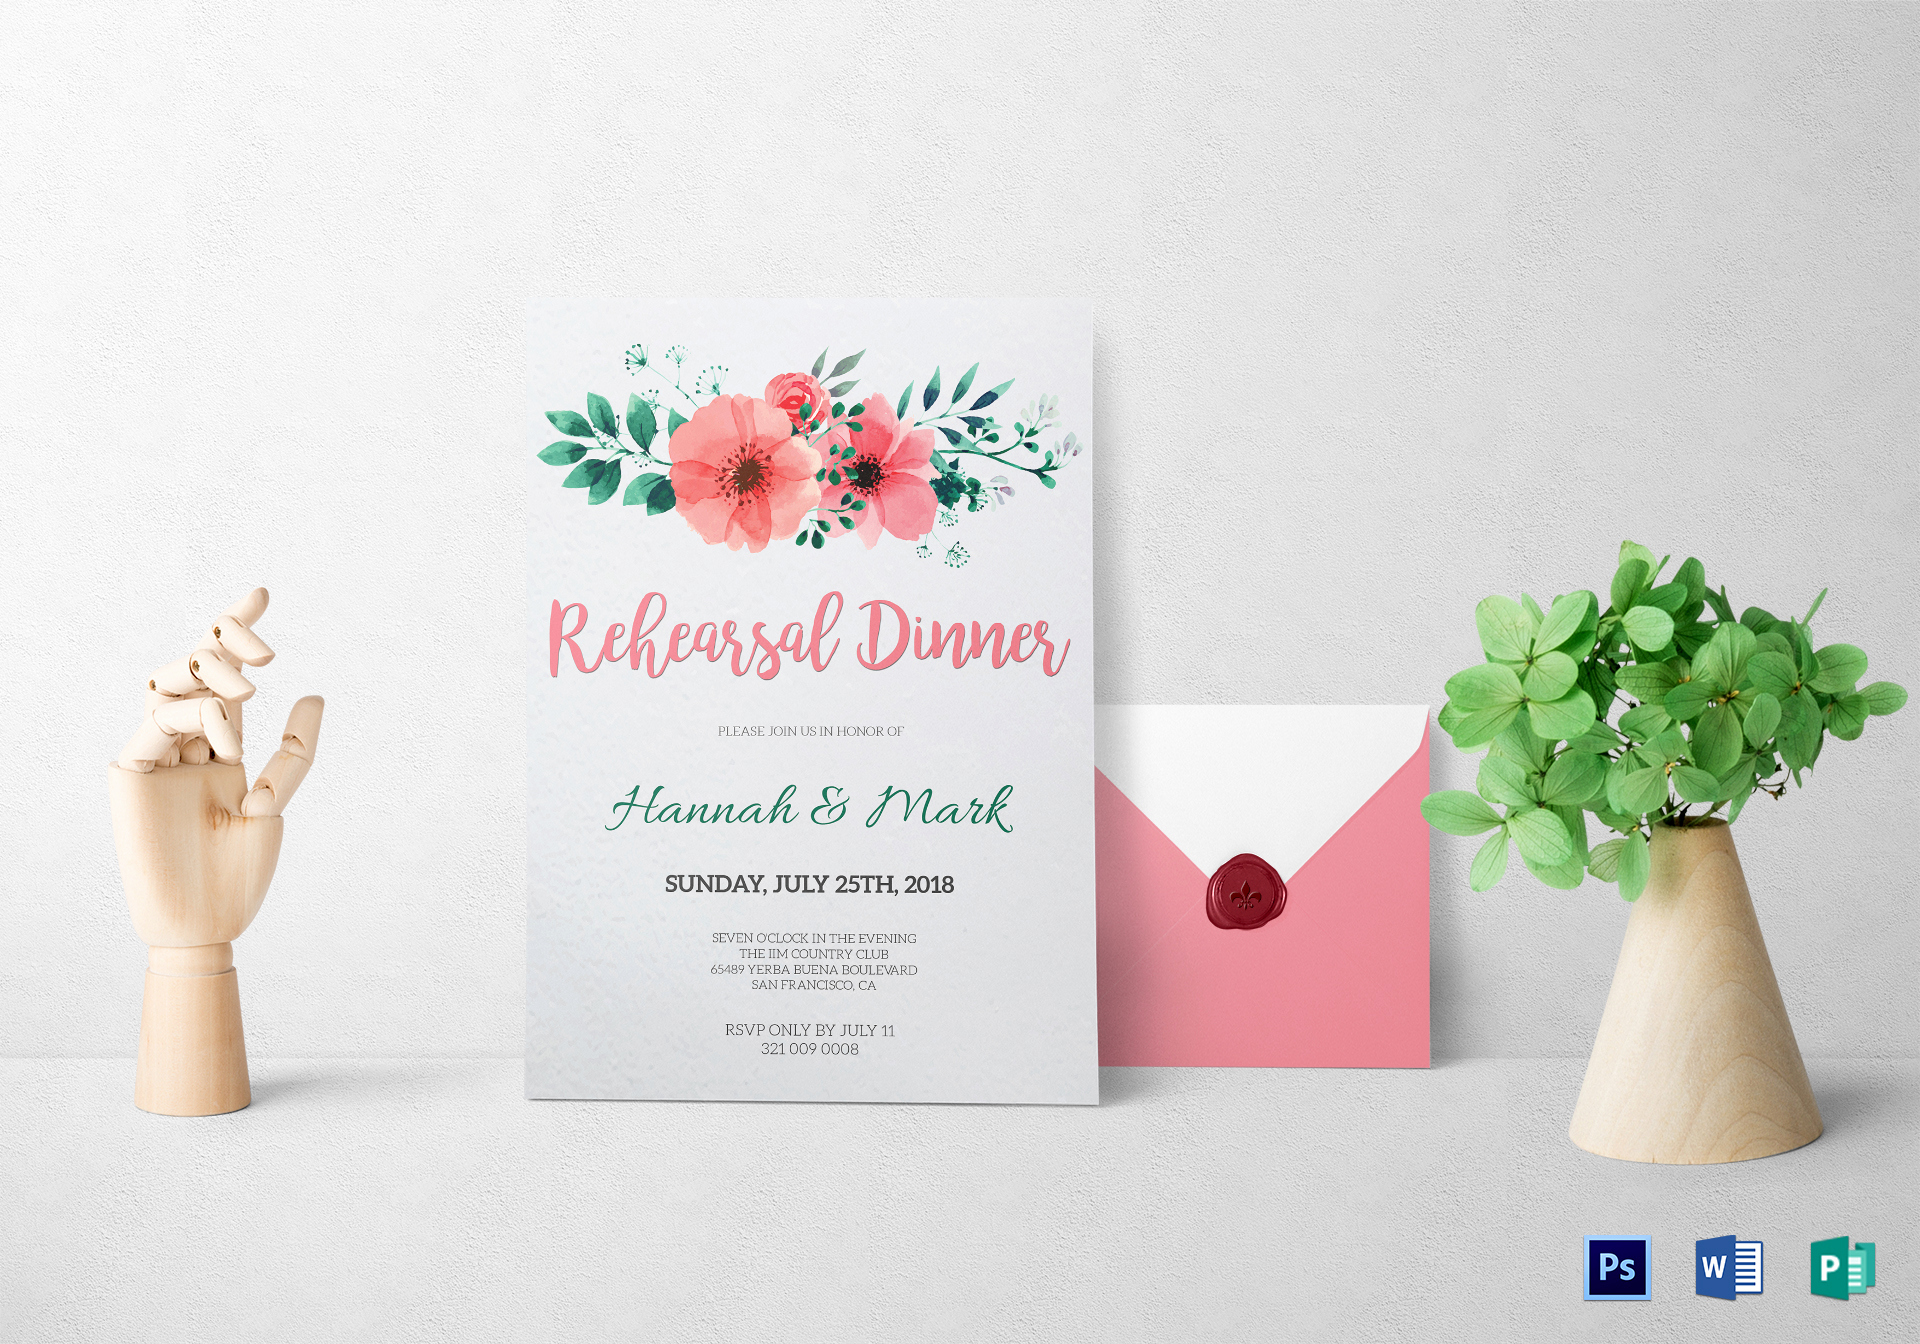 Rehearsal Dinner Invitation Template Word Unique Floral Rehearsal Dinner Invitation Design Template In Word